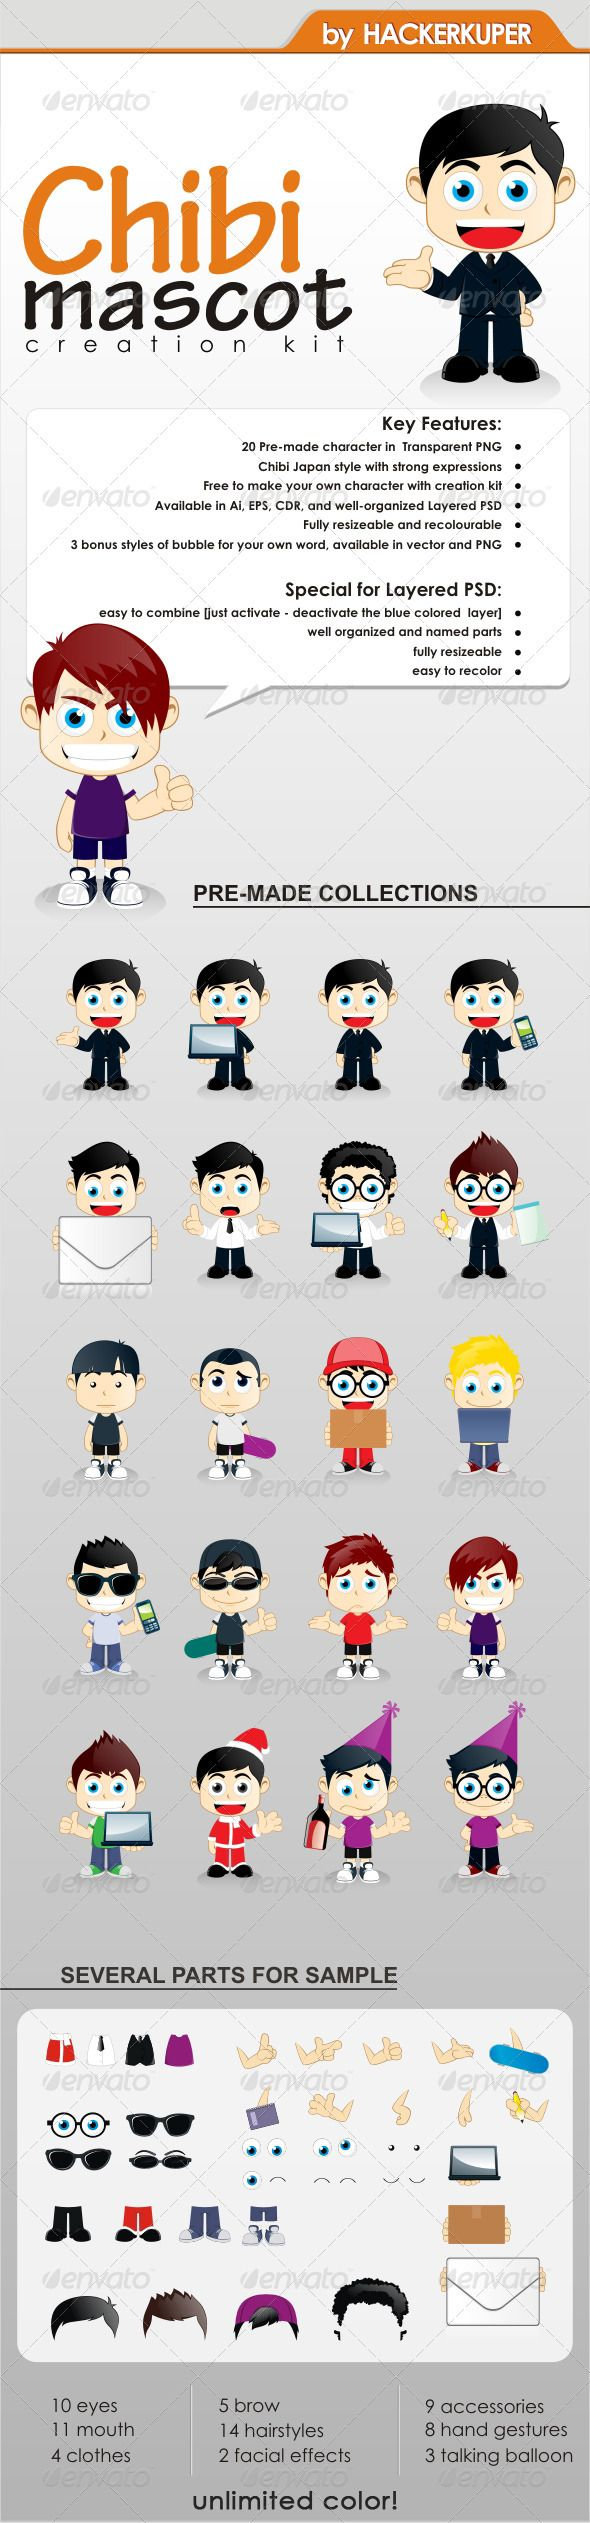 Chibi Mascot Creation Kit  For General Business  Business